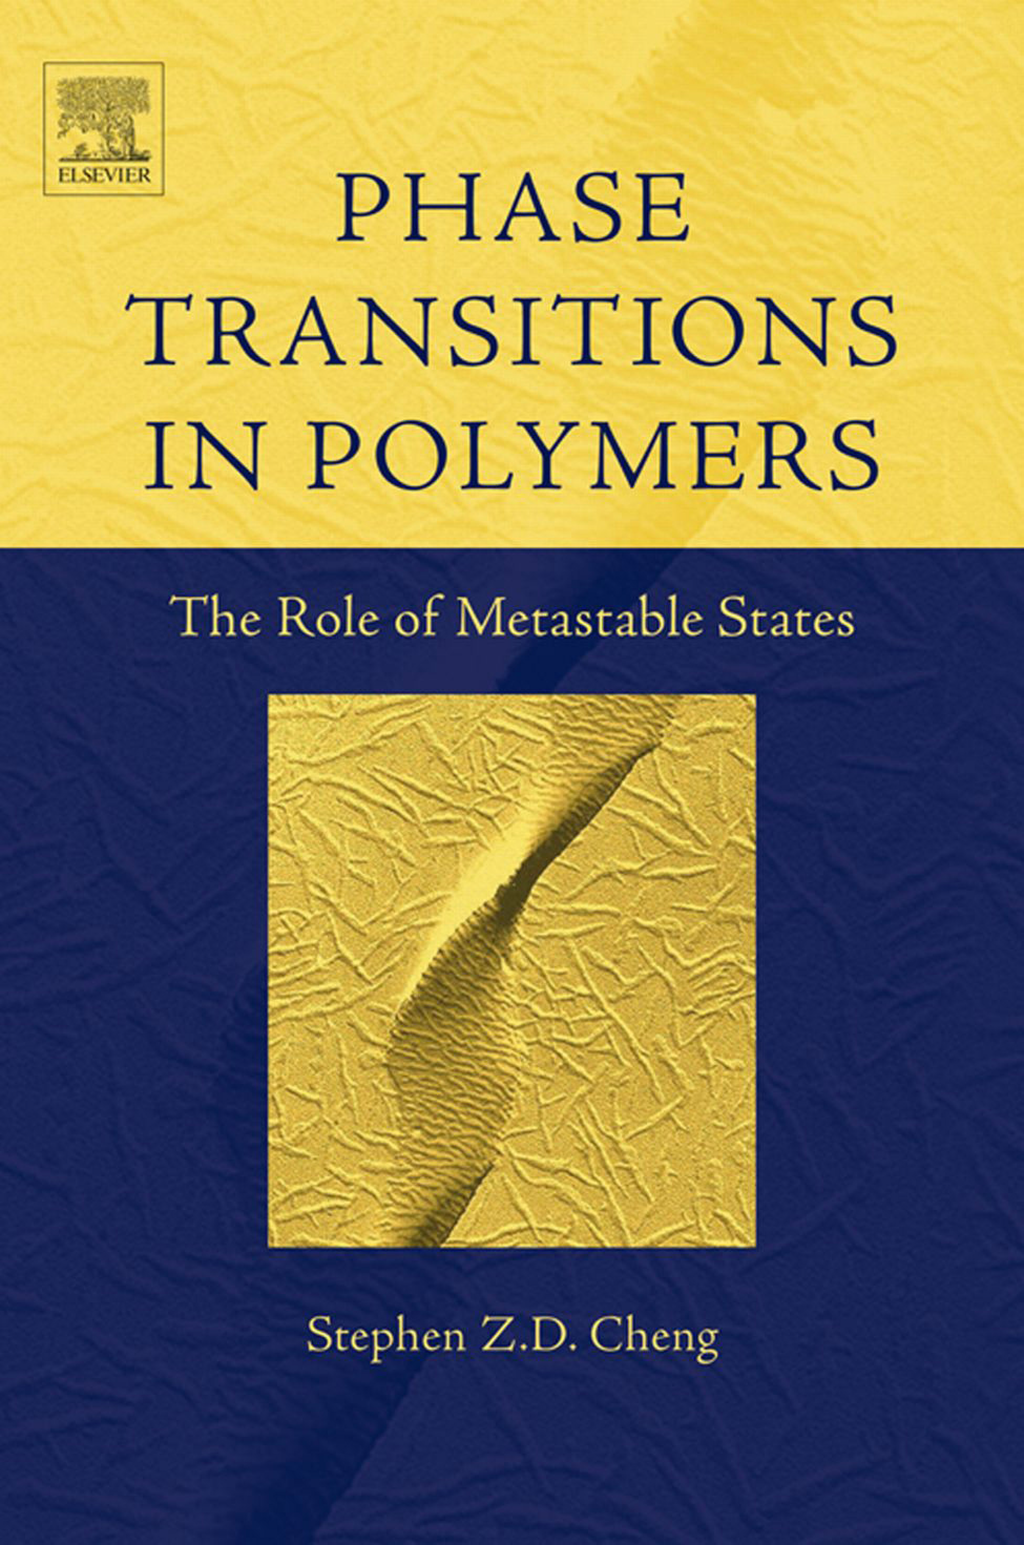 Phase Transitions in Polymers: The Role of Metastable States The Role of Metastable States